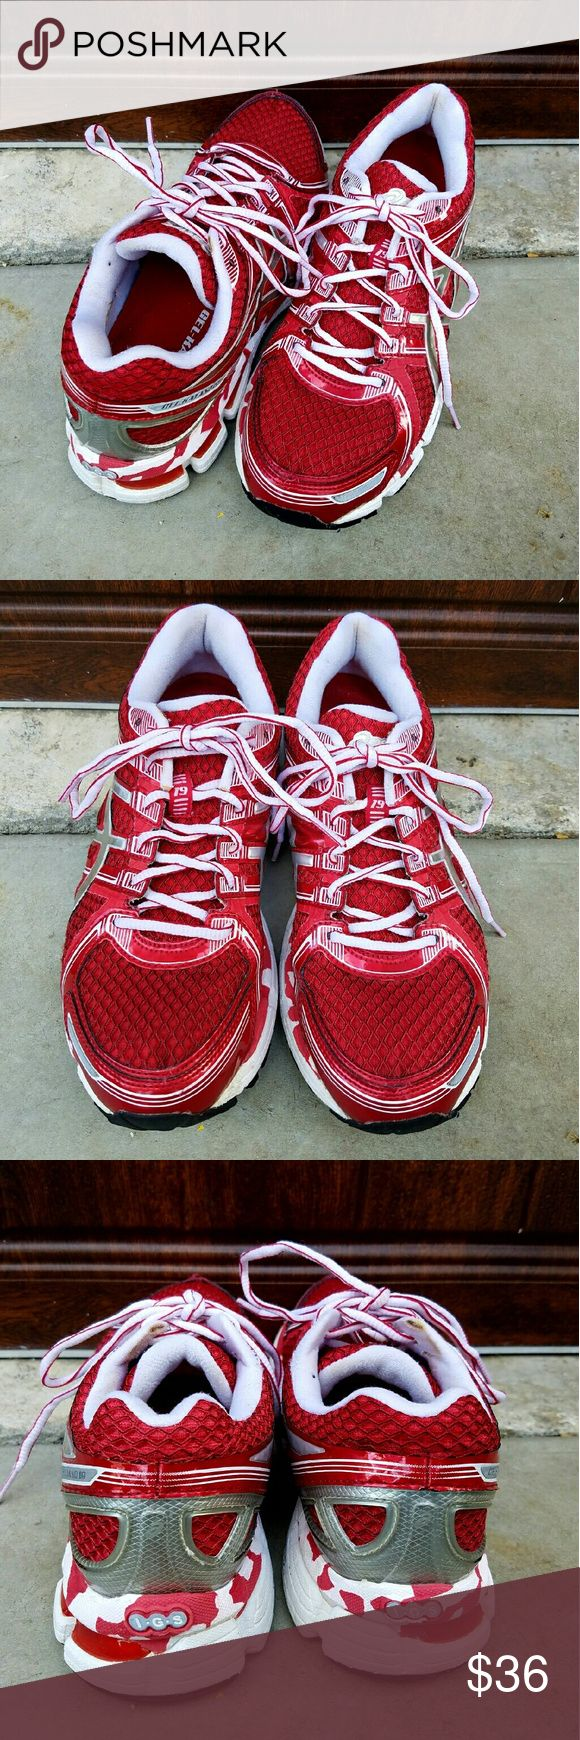 Gel Asics Kayano 19 Asics Gel Kayanos are my favorite running shoes. I used these red Kayanos for running, as can be seen by the wear on the soles. They do not have any rips or stains, & are in good condition overall. I used these shoes for about 5 months, but rotated them with two other pair, so they were not used everyday. Questions? Please don't hesitate to ask. Asics Shoes Athletic Shoes